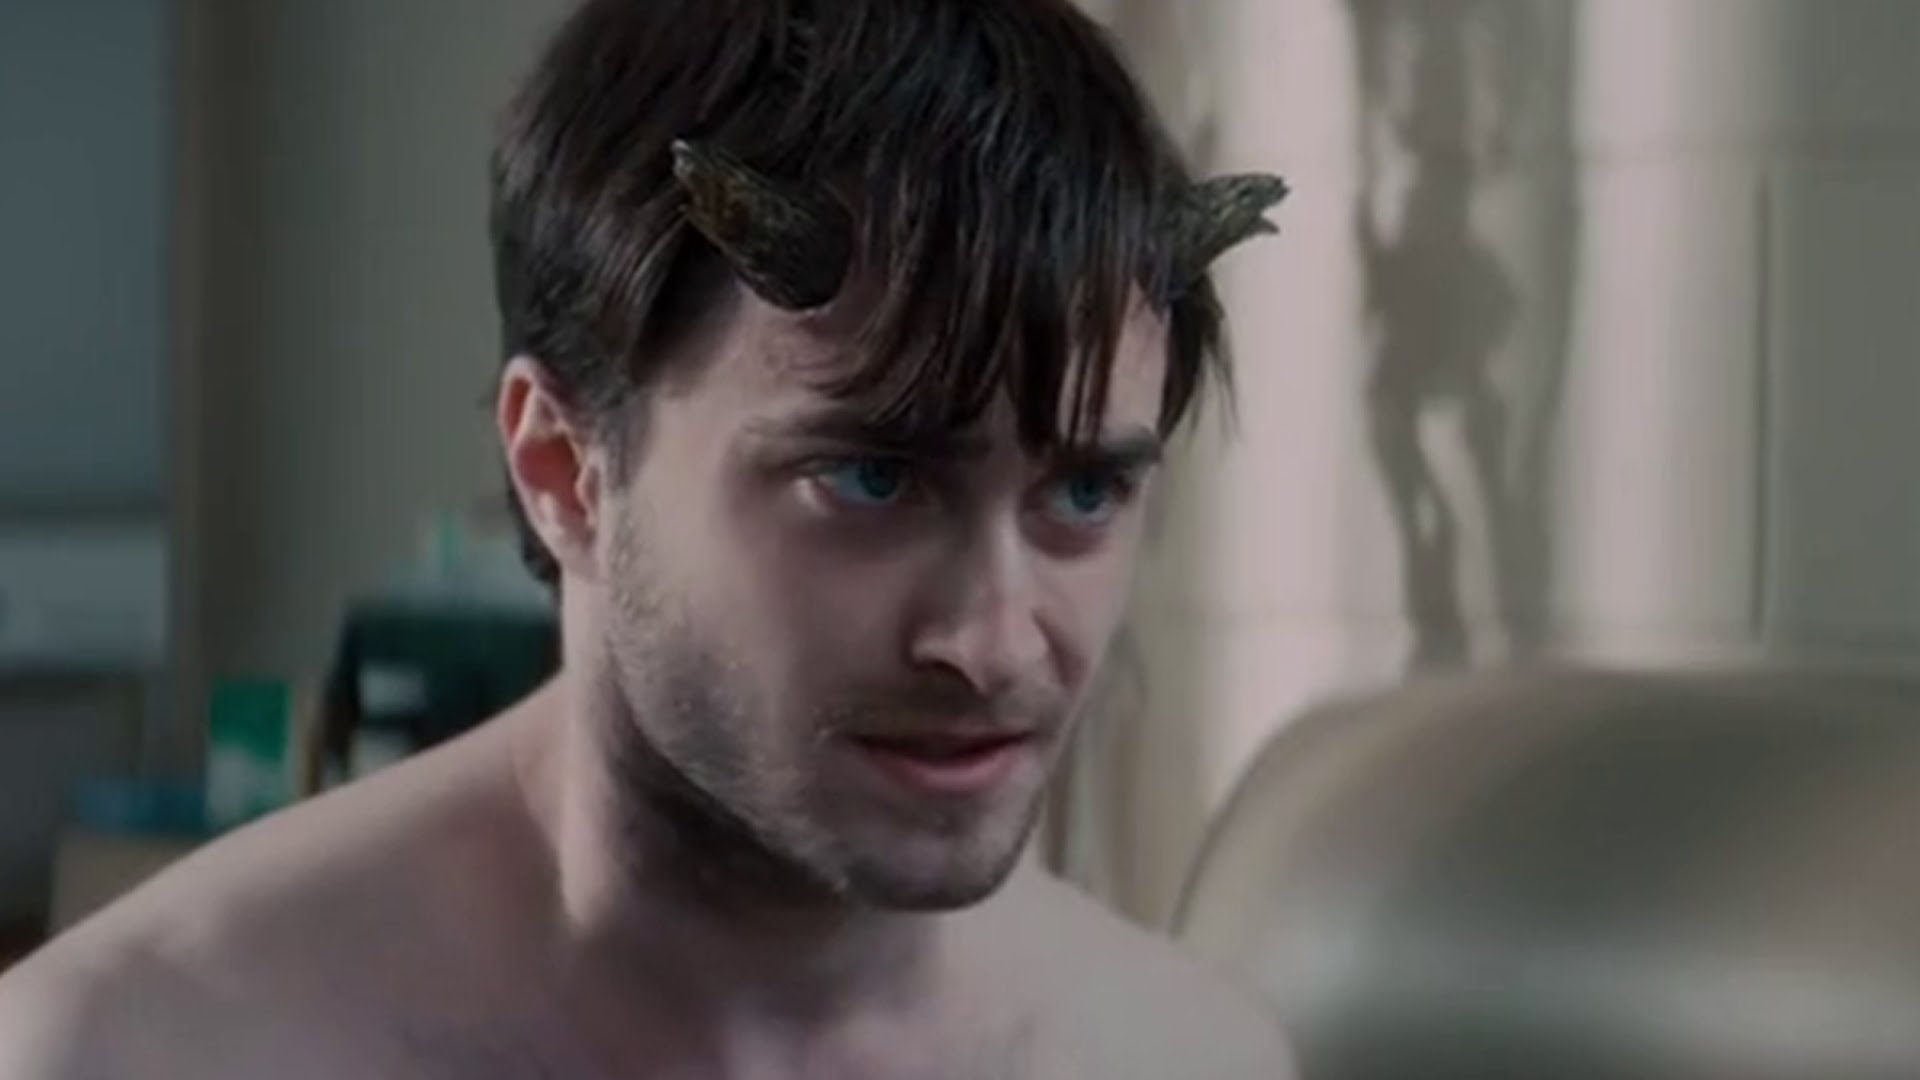 Daniel Radcliffe will play in a film about creating a scandalous series of games 04/09/2015 21